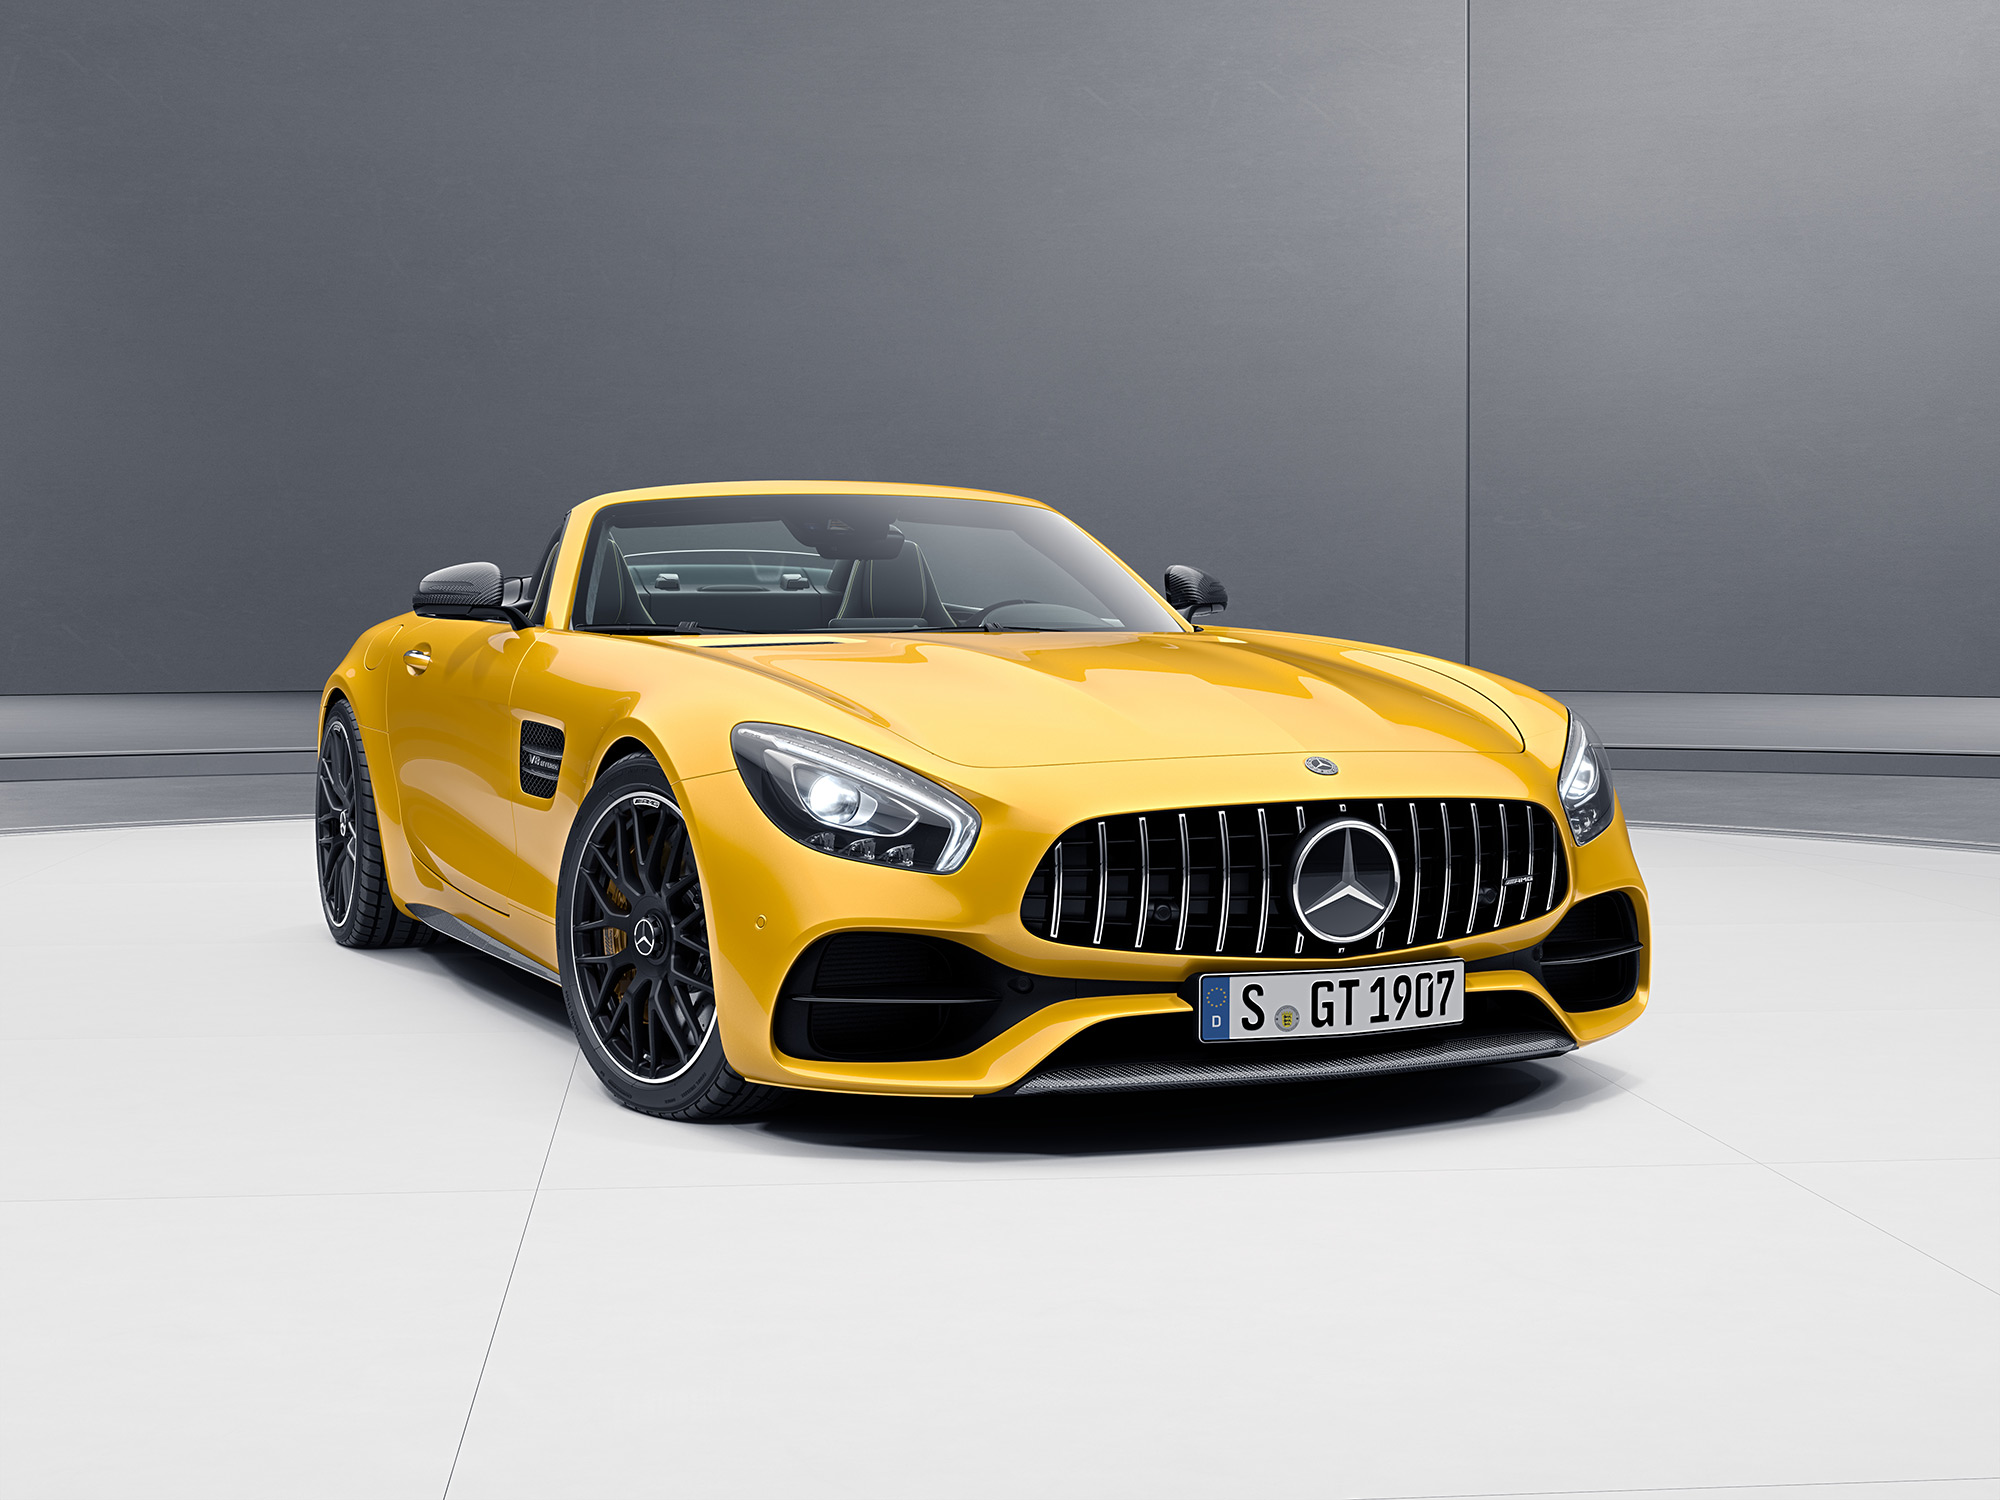 Car pictures list for mercedes benz amg gt roadster 2018 4 for Mercedes benz bahrain